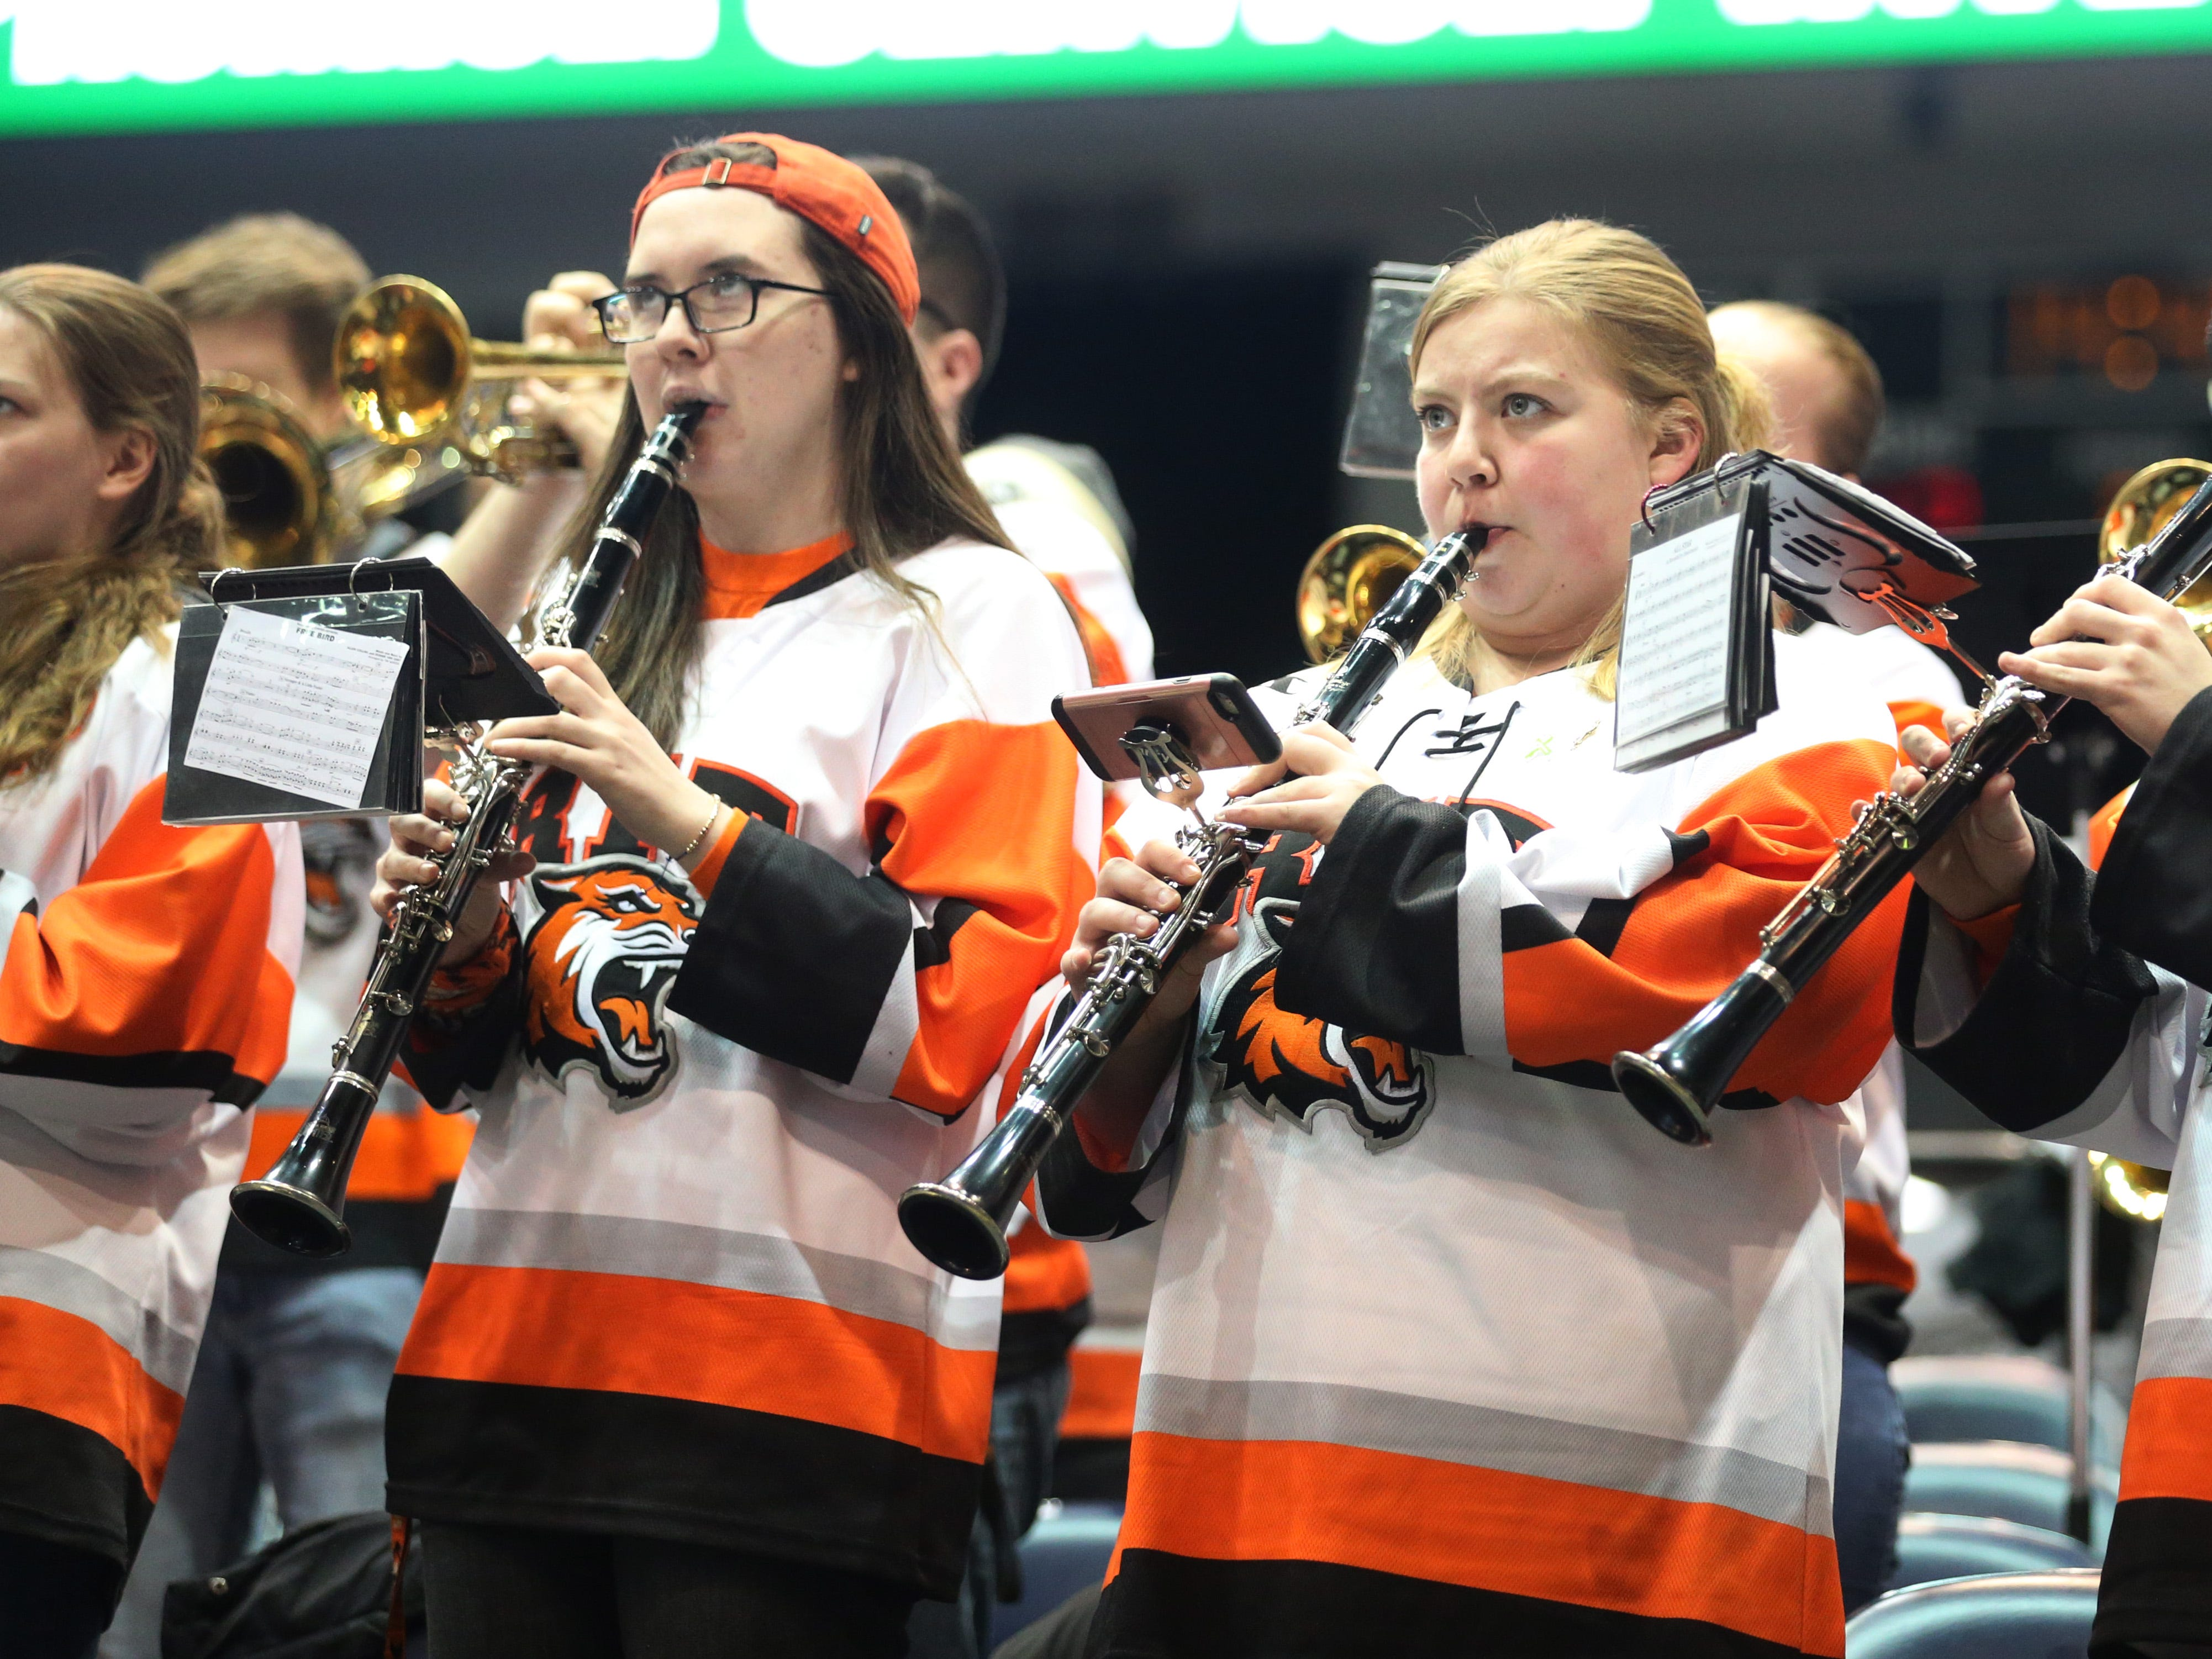 The RIT Pep Band performs in support of St. Bonaventure.